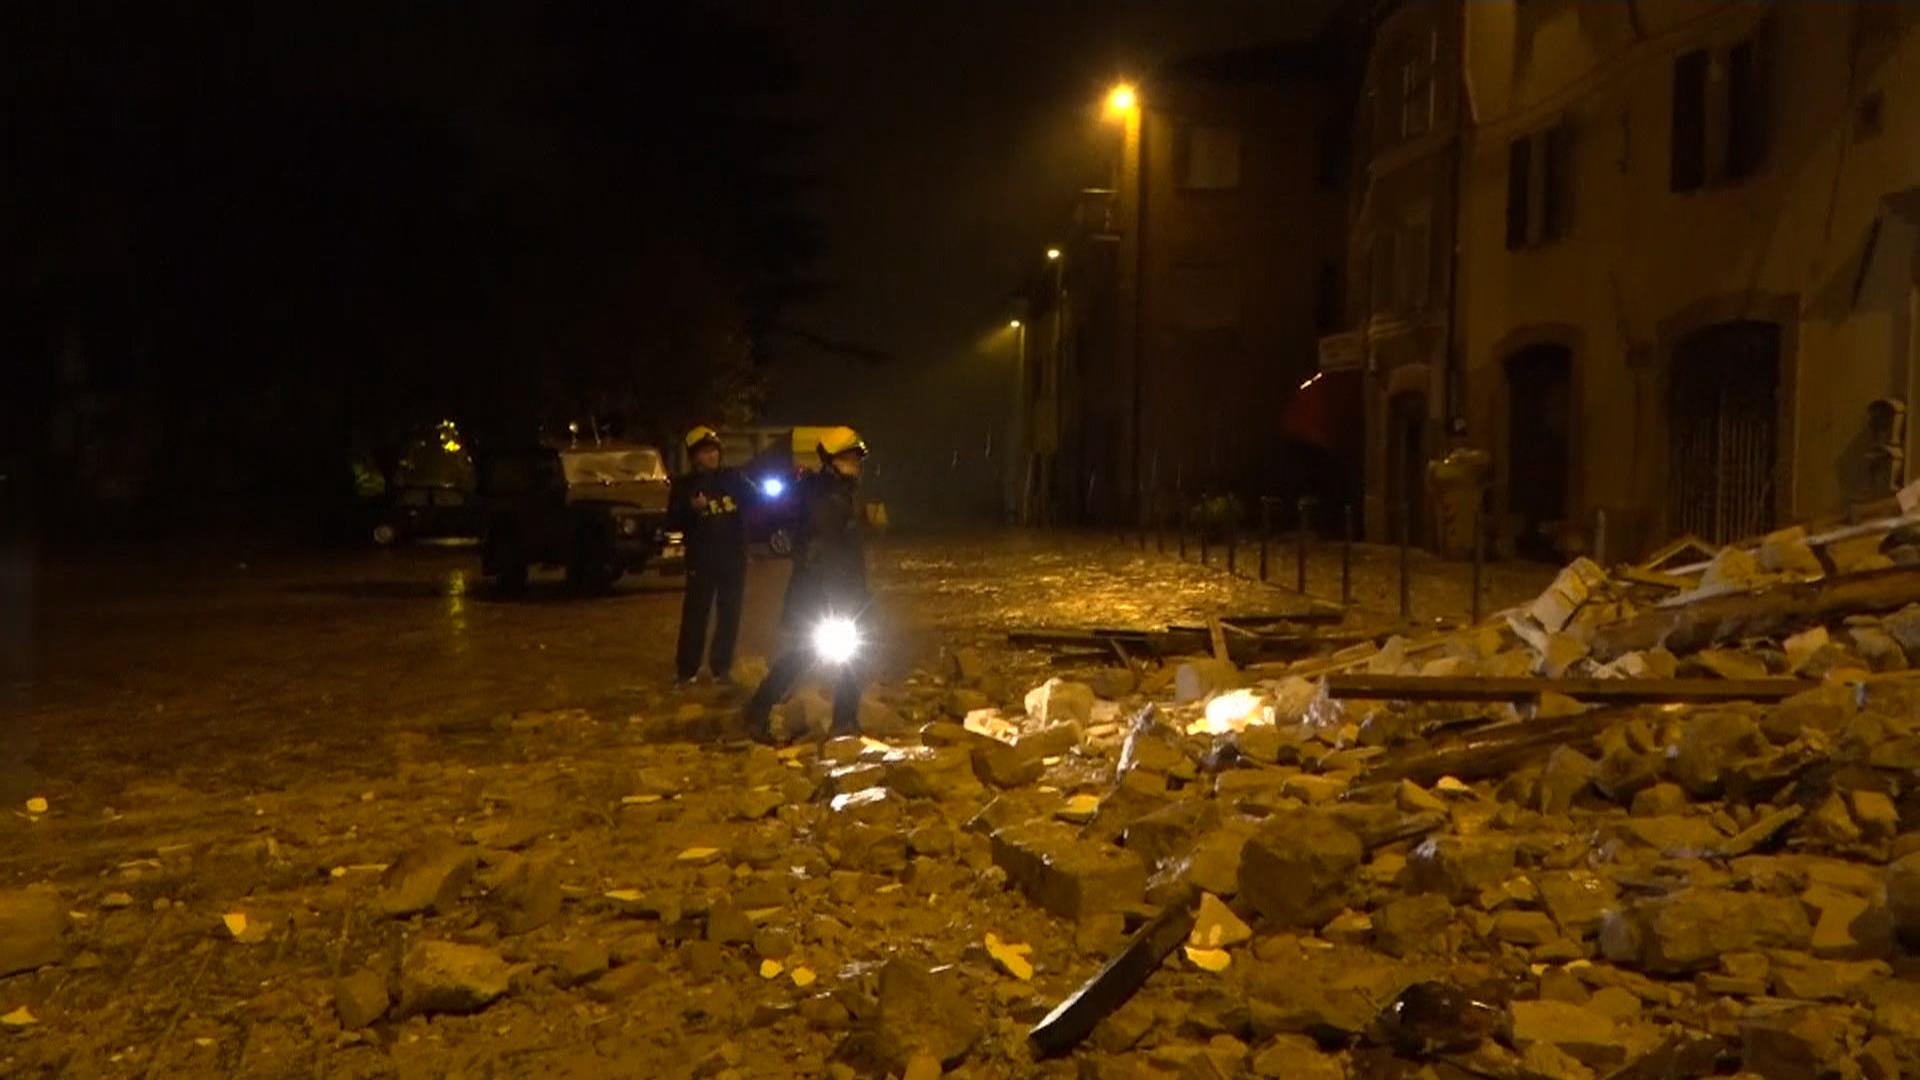 2 powerful earthquakes hit Italy near location of deadly August quake